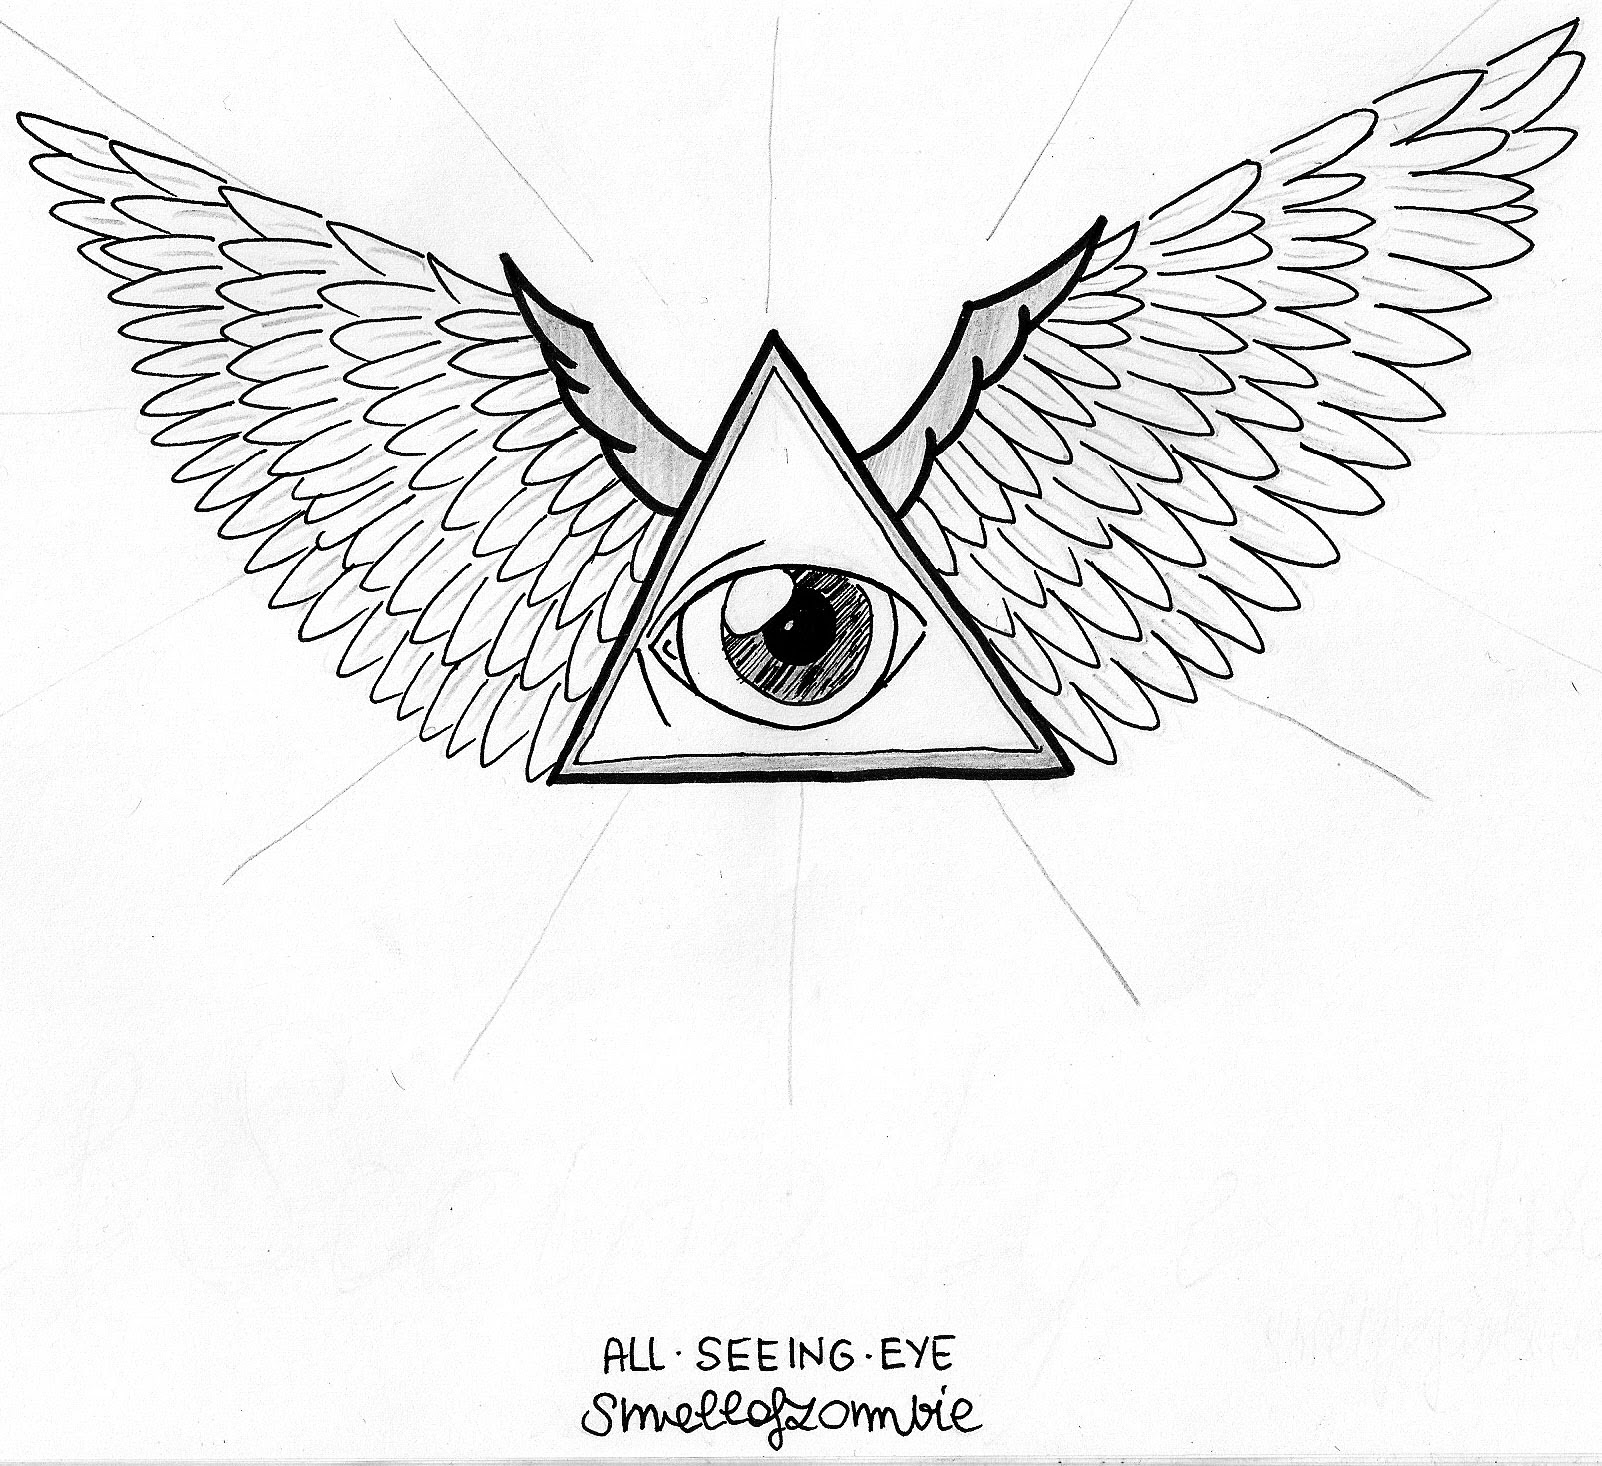 Tattoo Galleries All Seeing Eye Why Does Japan Called The Land Of